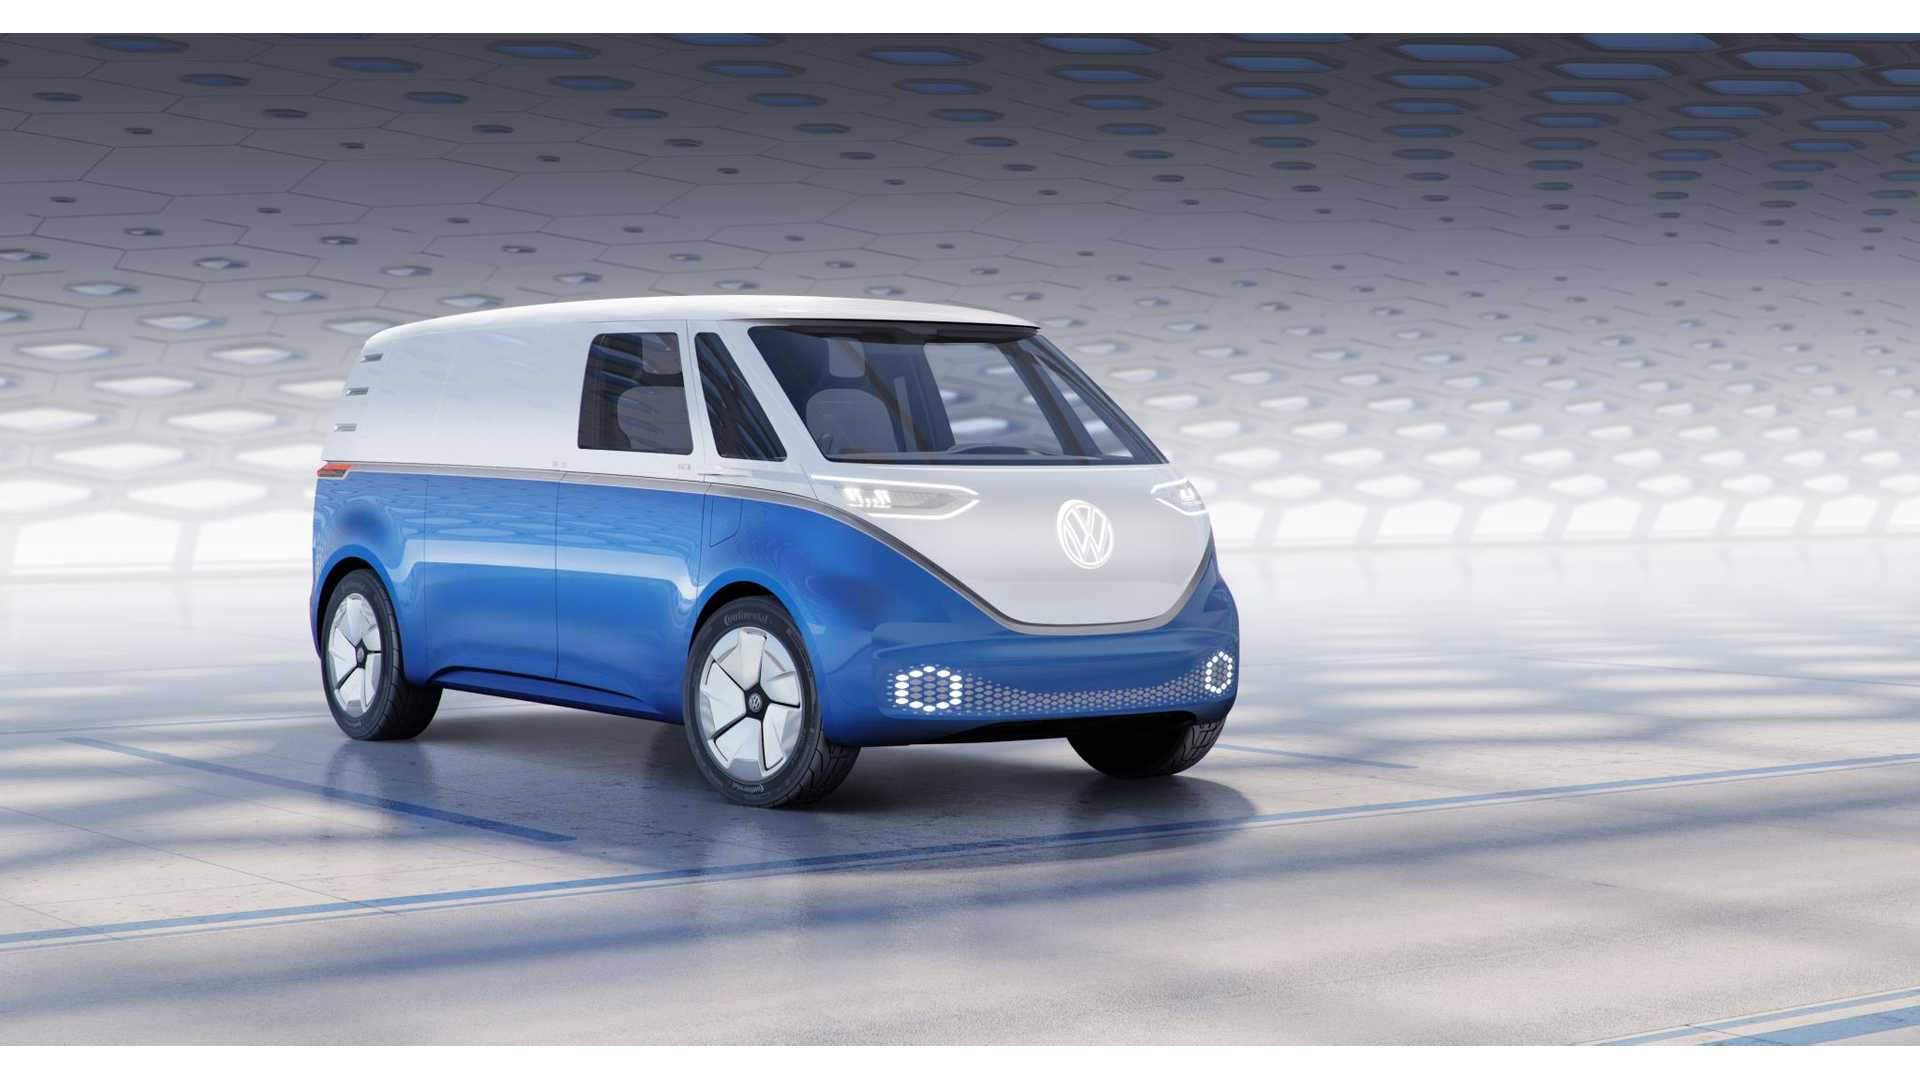 2f70fa2d40 Volkswagen Reveals I.D. BUZZ CARGO Electric Van With 111-kWh Battery